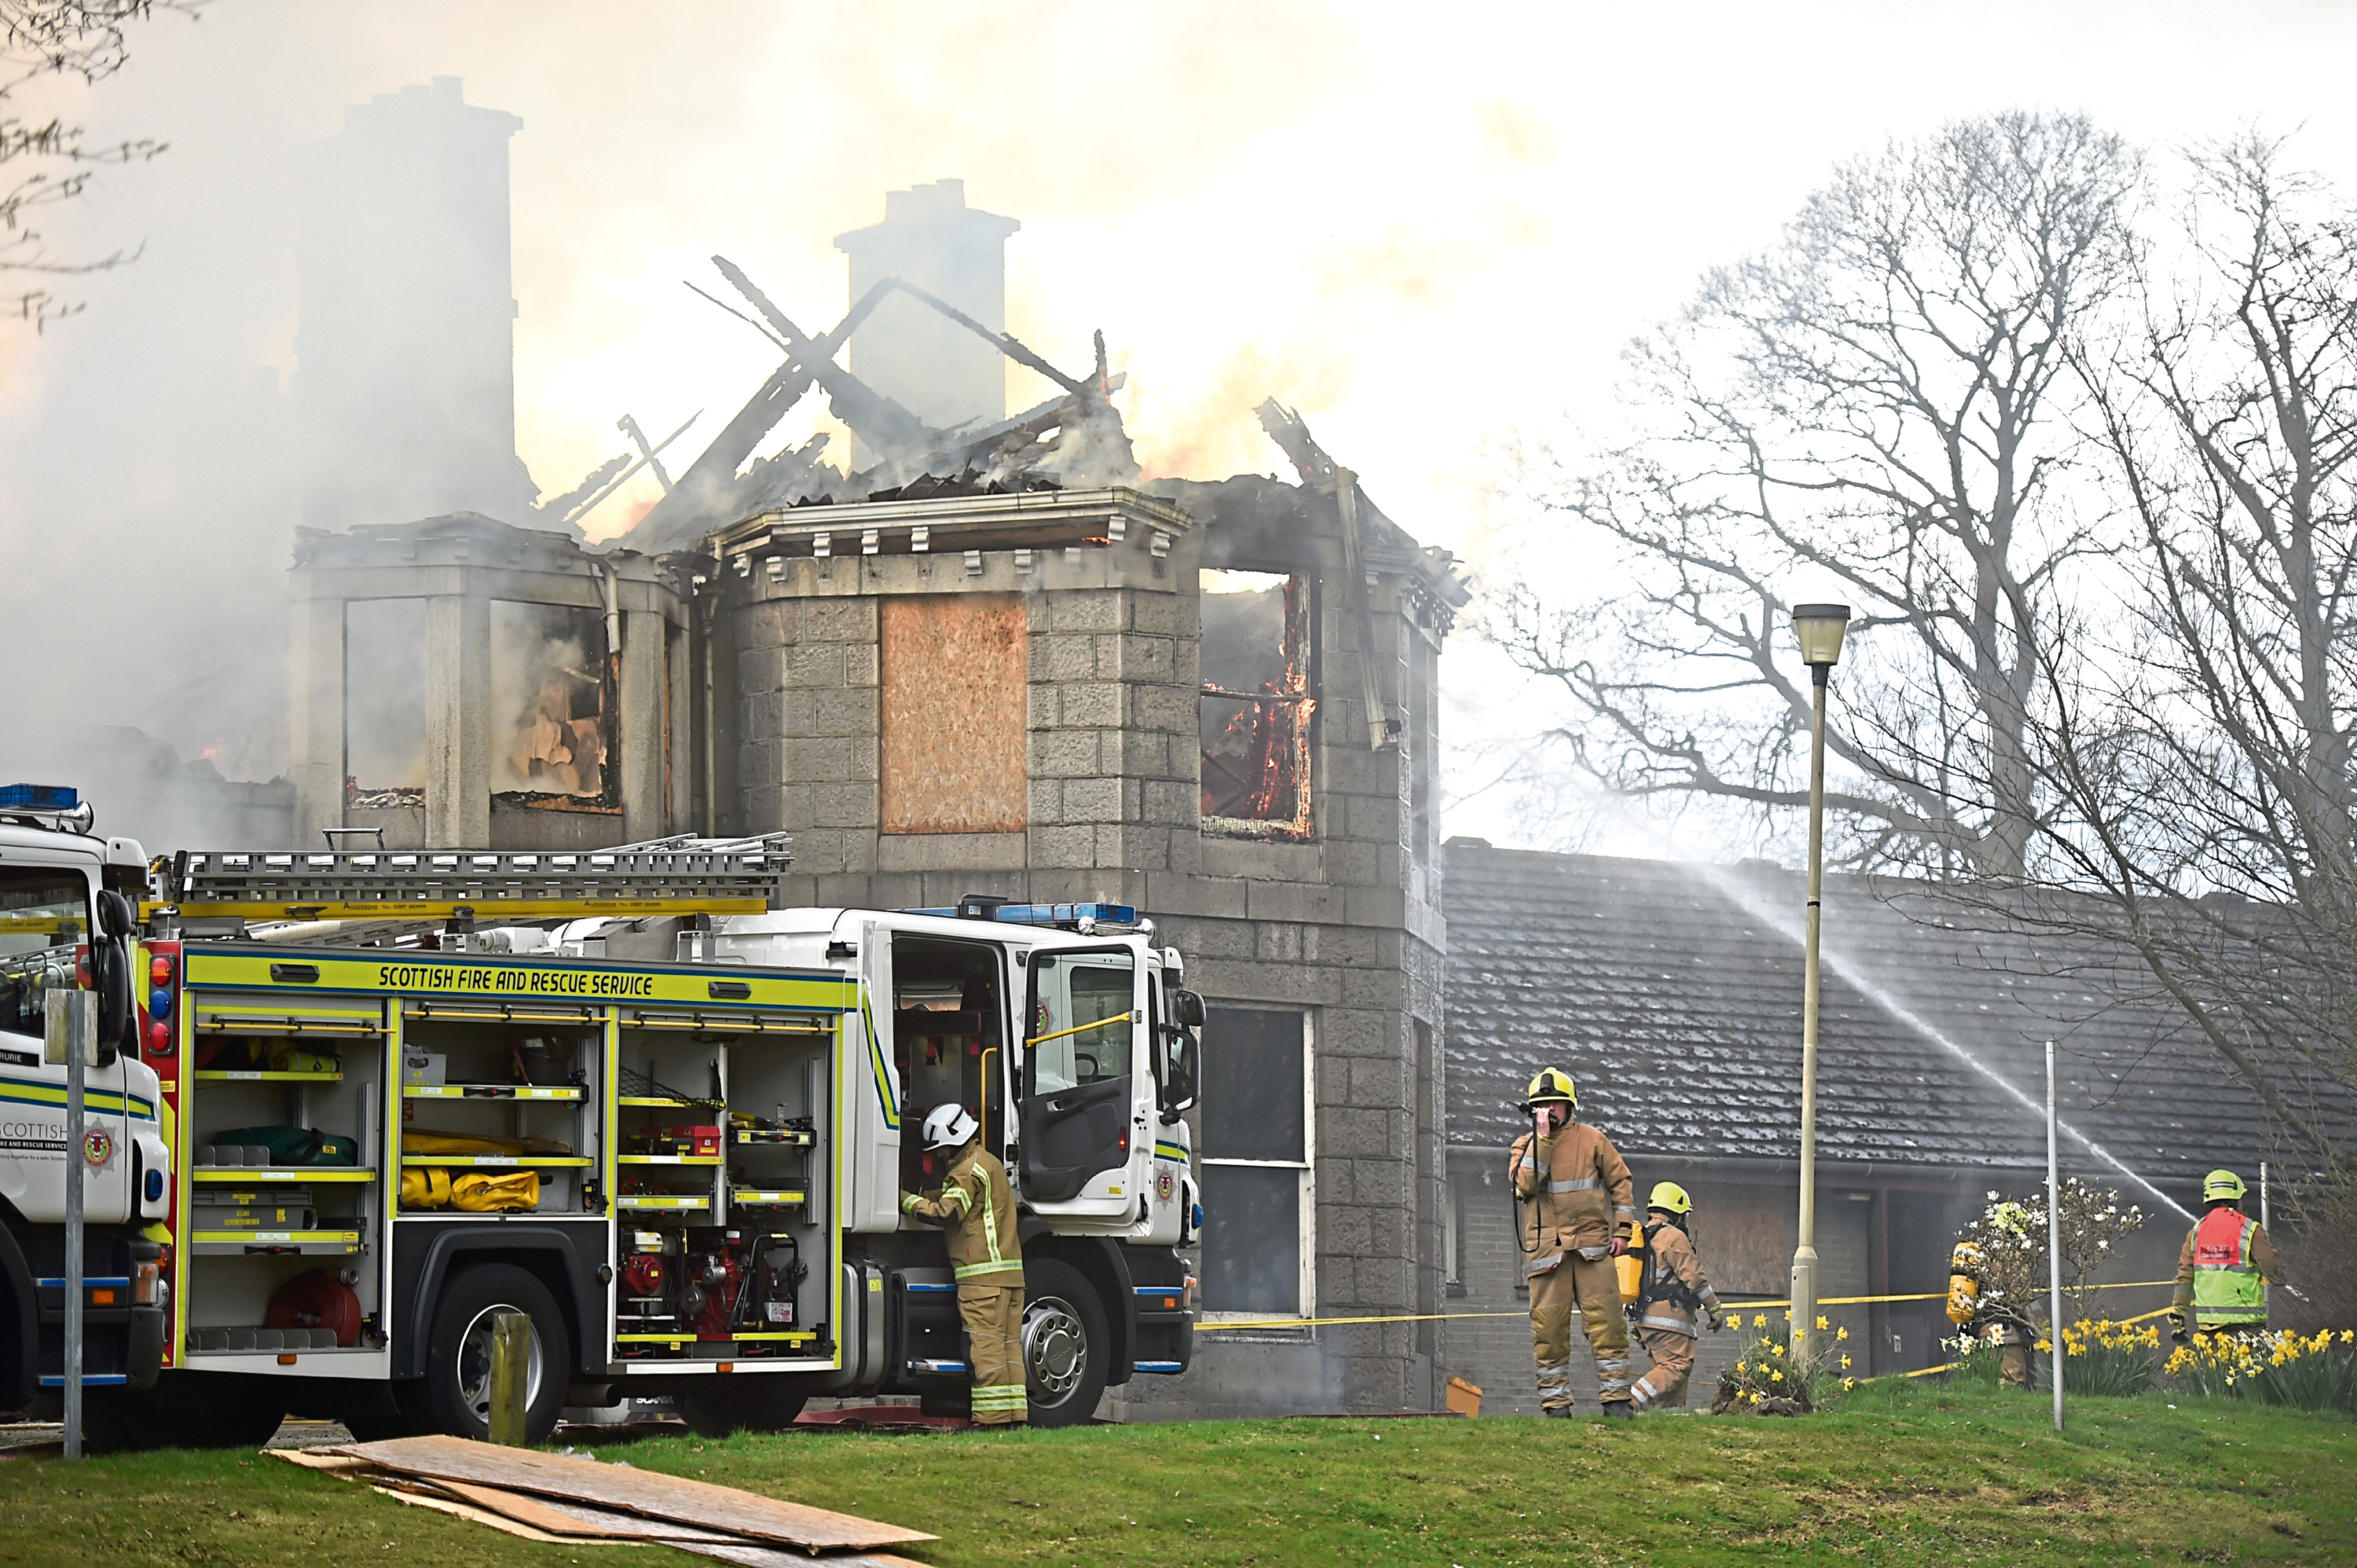 Firefighters tackling the blaze which destroyed the former Blythewood Care Home in Inverurie in April